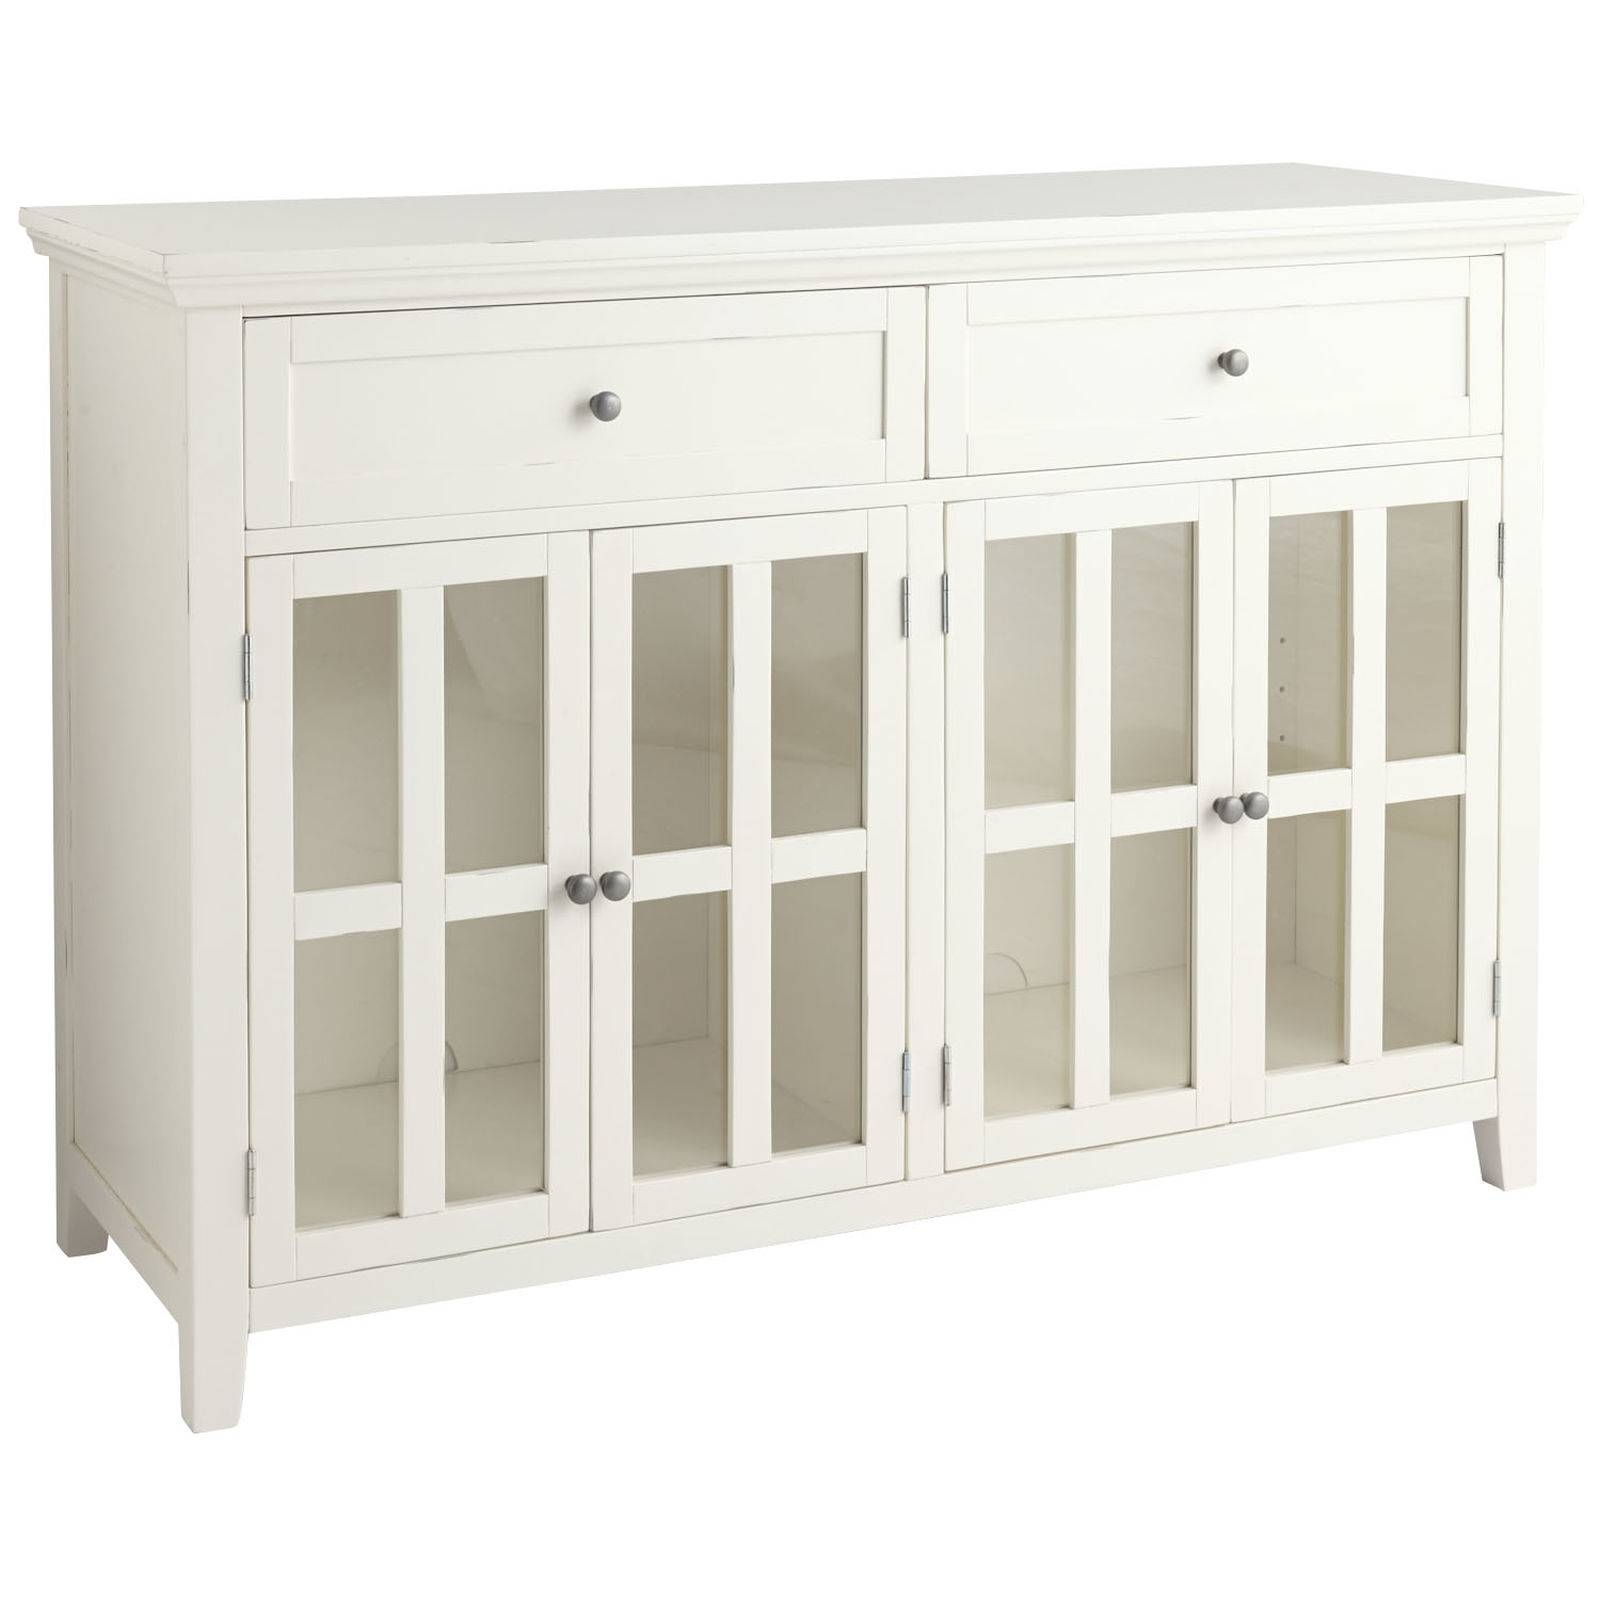 dining room sideboard white. Dining Room Sideboard White  Gen4Congress With Regard To Glass Sideboards 7 of 15 Best Collection